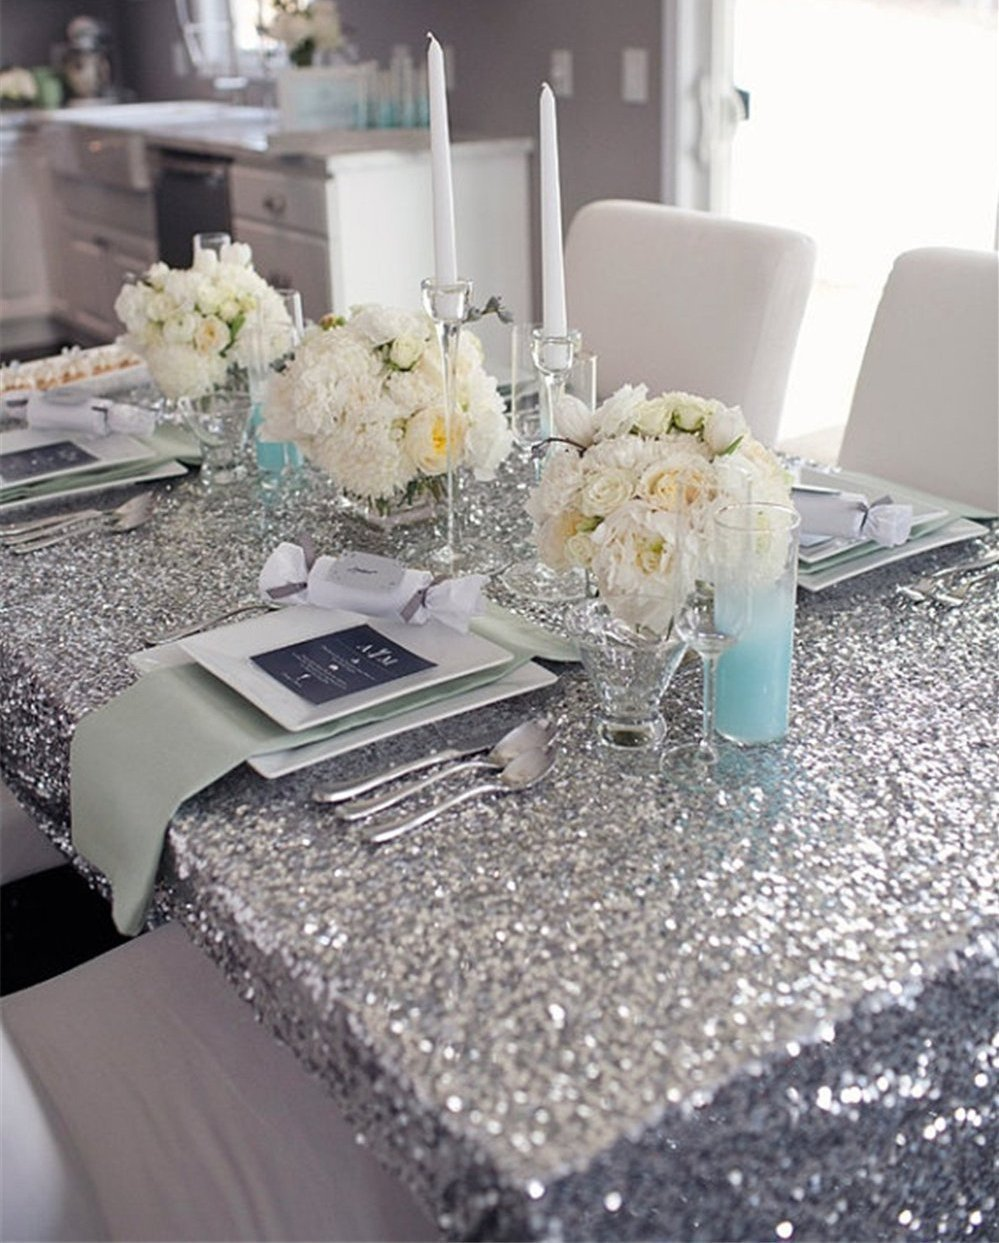 B-COOL 90x156 Shimmer Sparkly Wholesale Sequin Tablecloth for Wedding